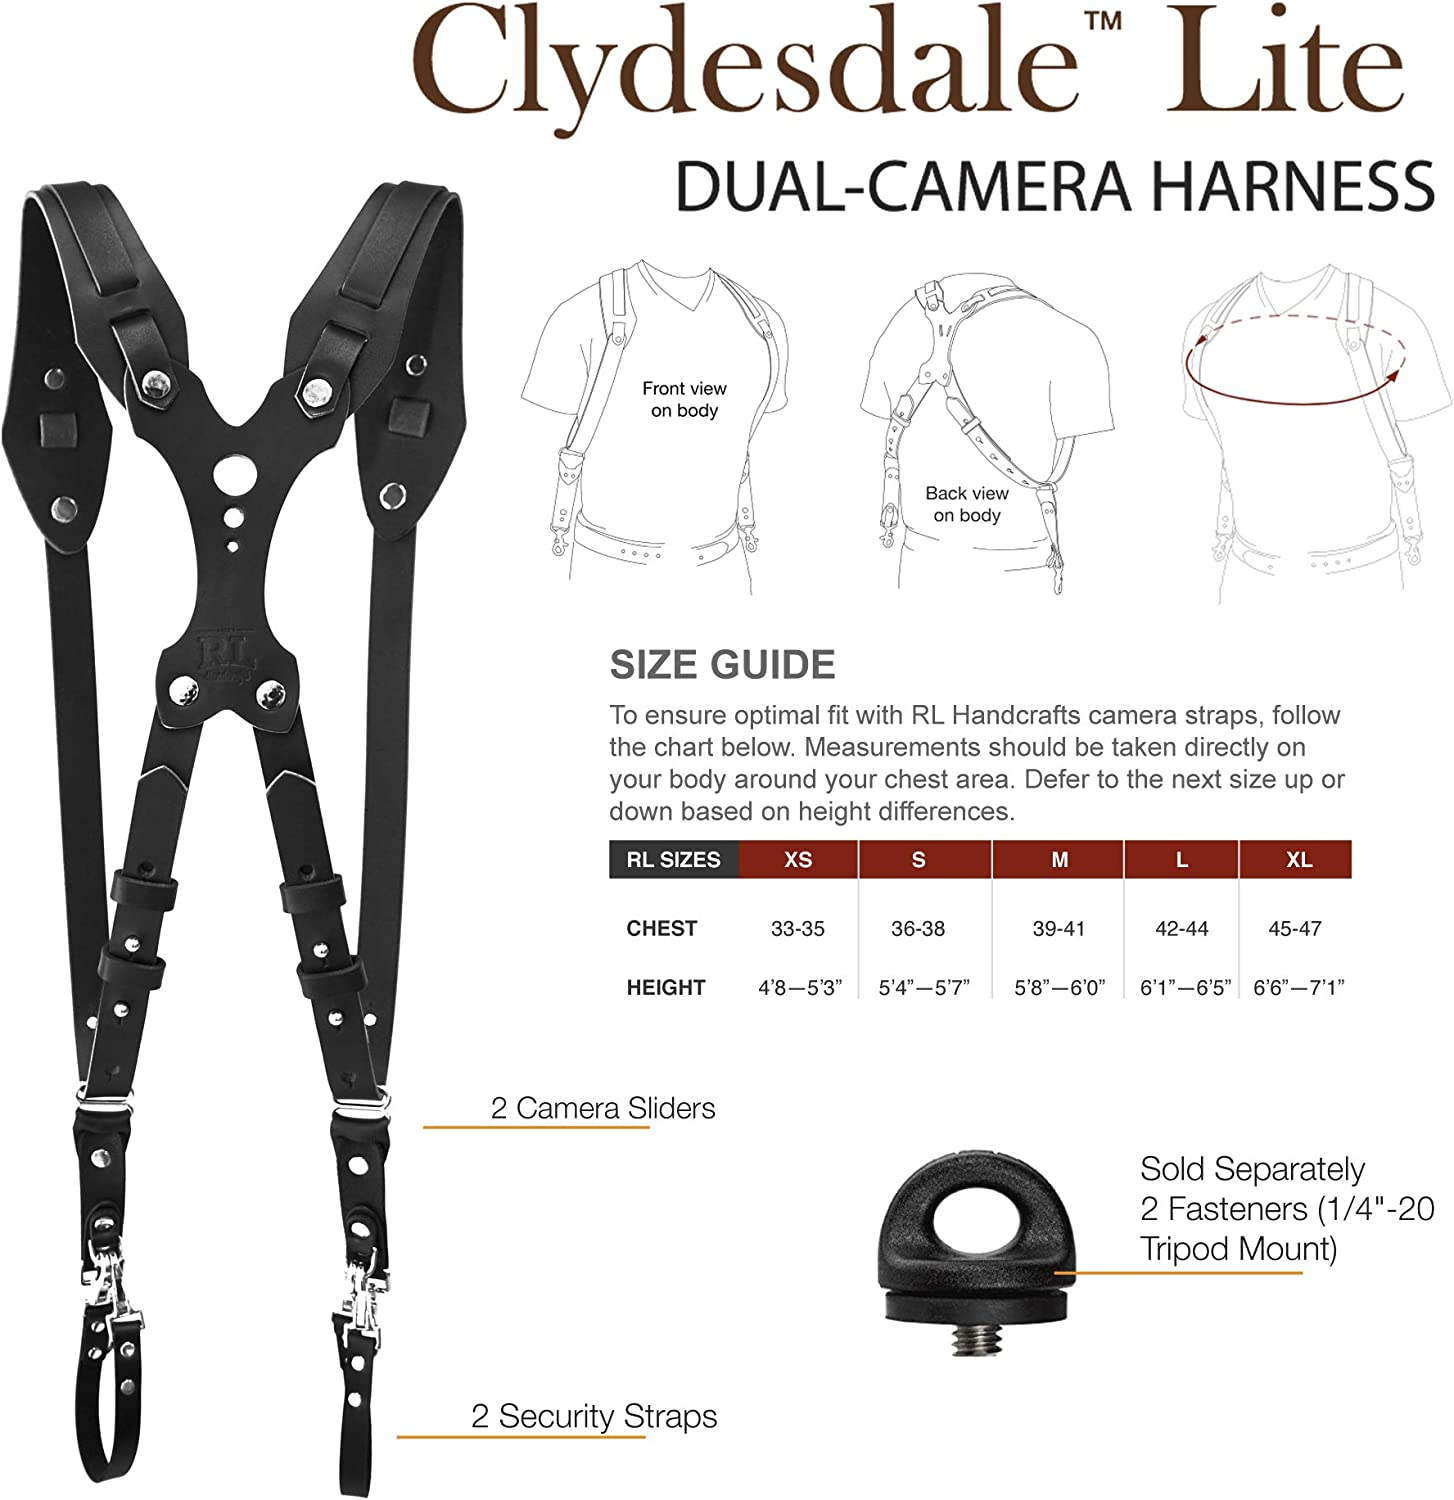 Clydesdale Lite-Dual Handmade Leather Camera Harness DLSR Mirrorless Point /& Shoot Made in The USA Sling /& Strap RL Handcrafts